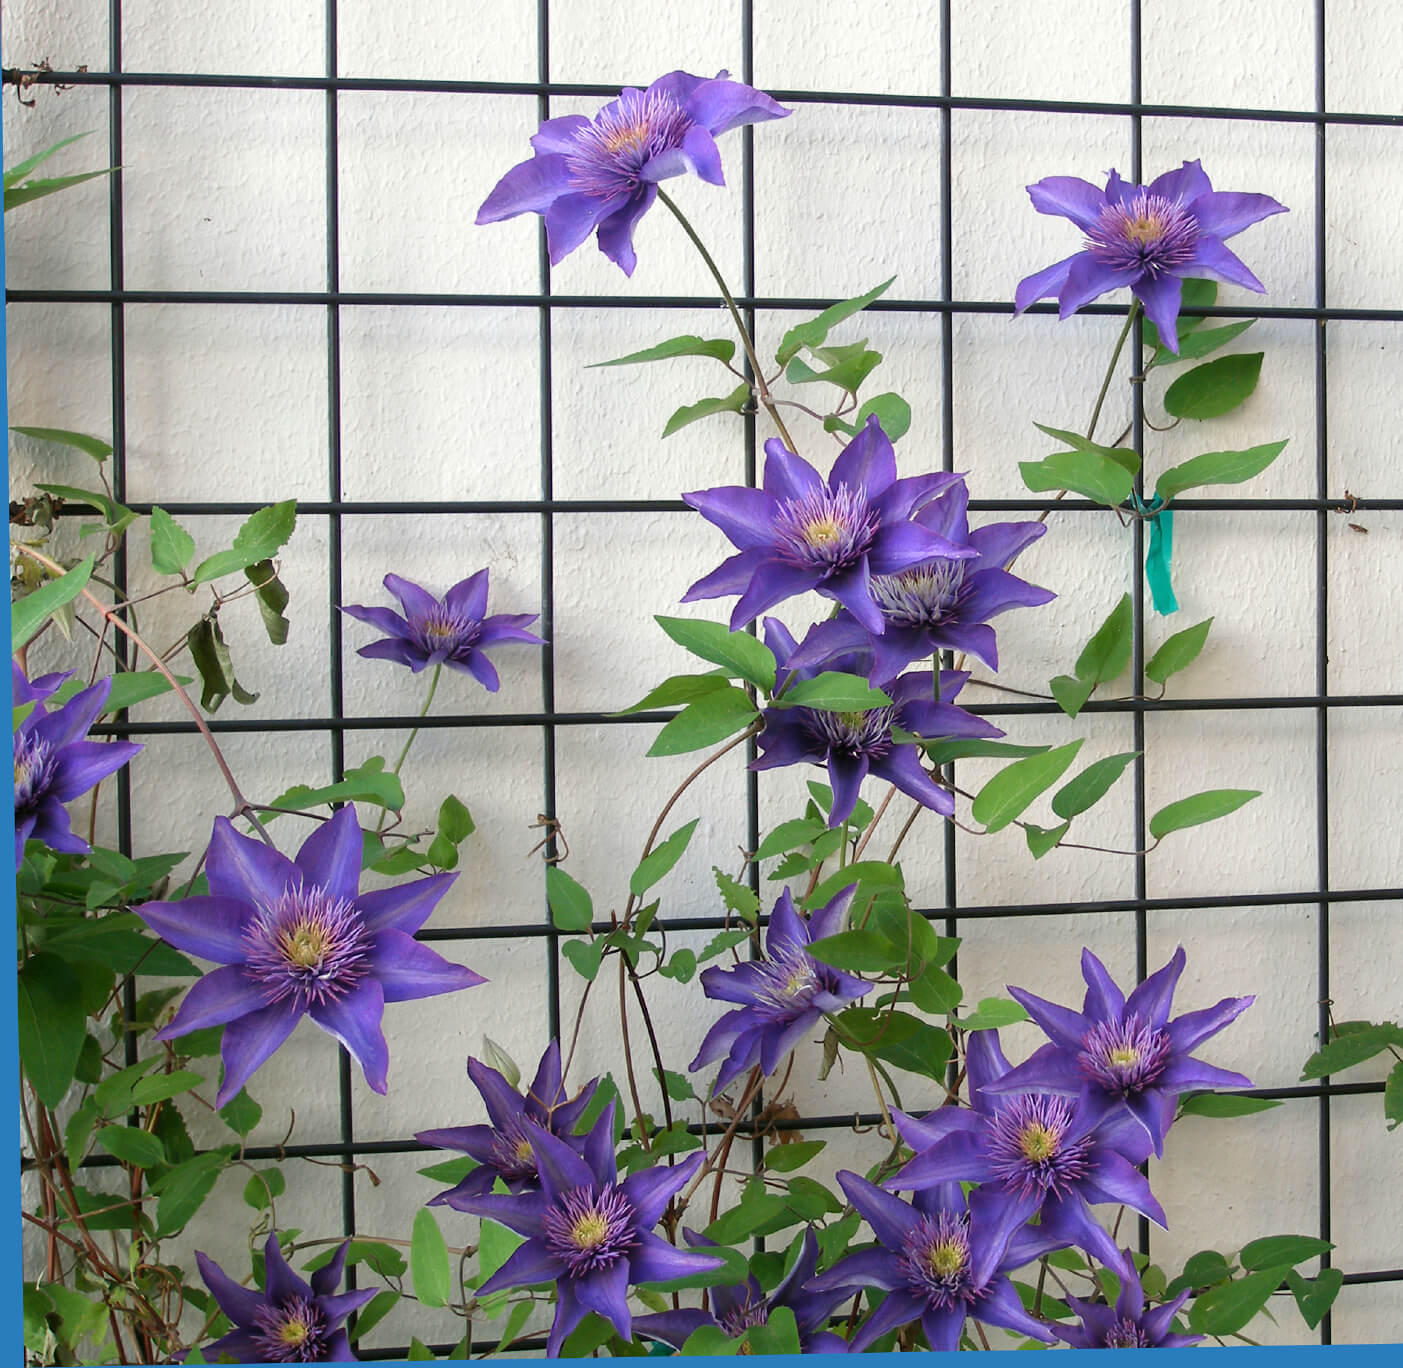 The purple blooms here are Clematis, which use this metal lattice to climb.